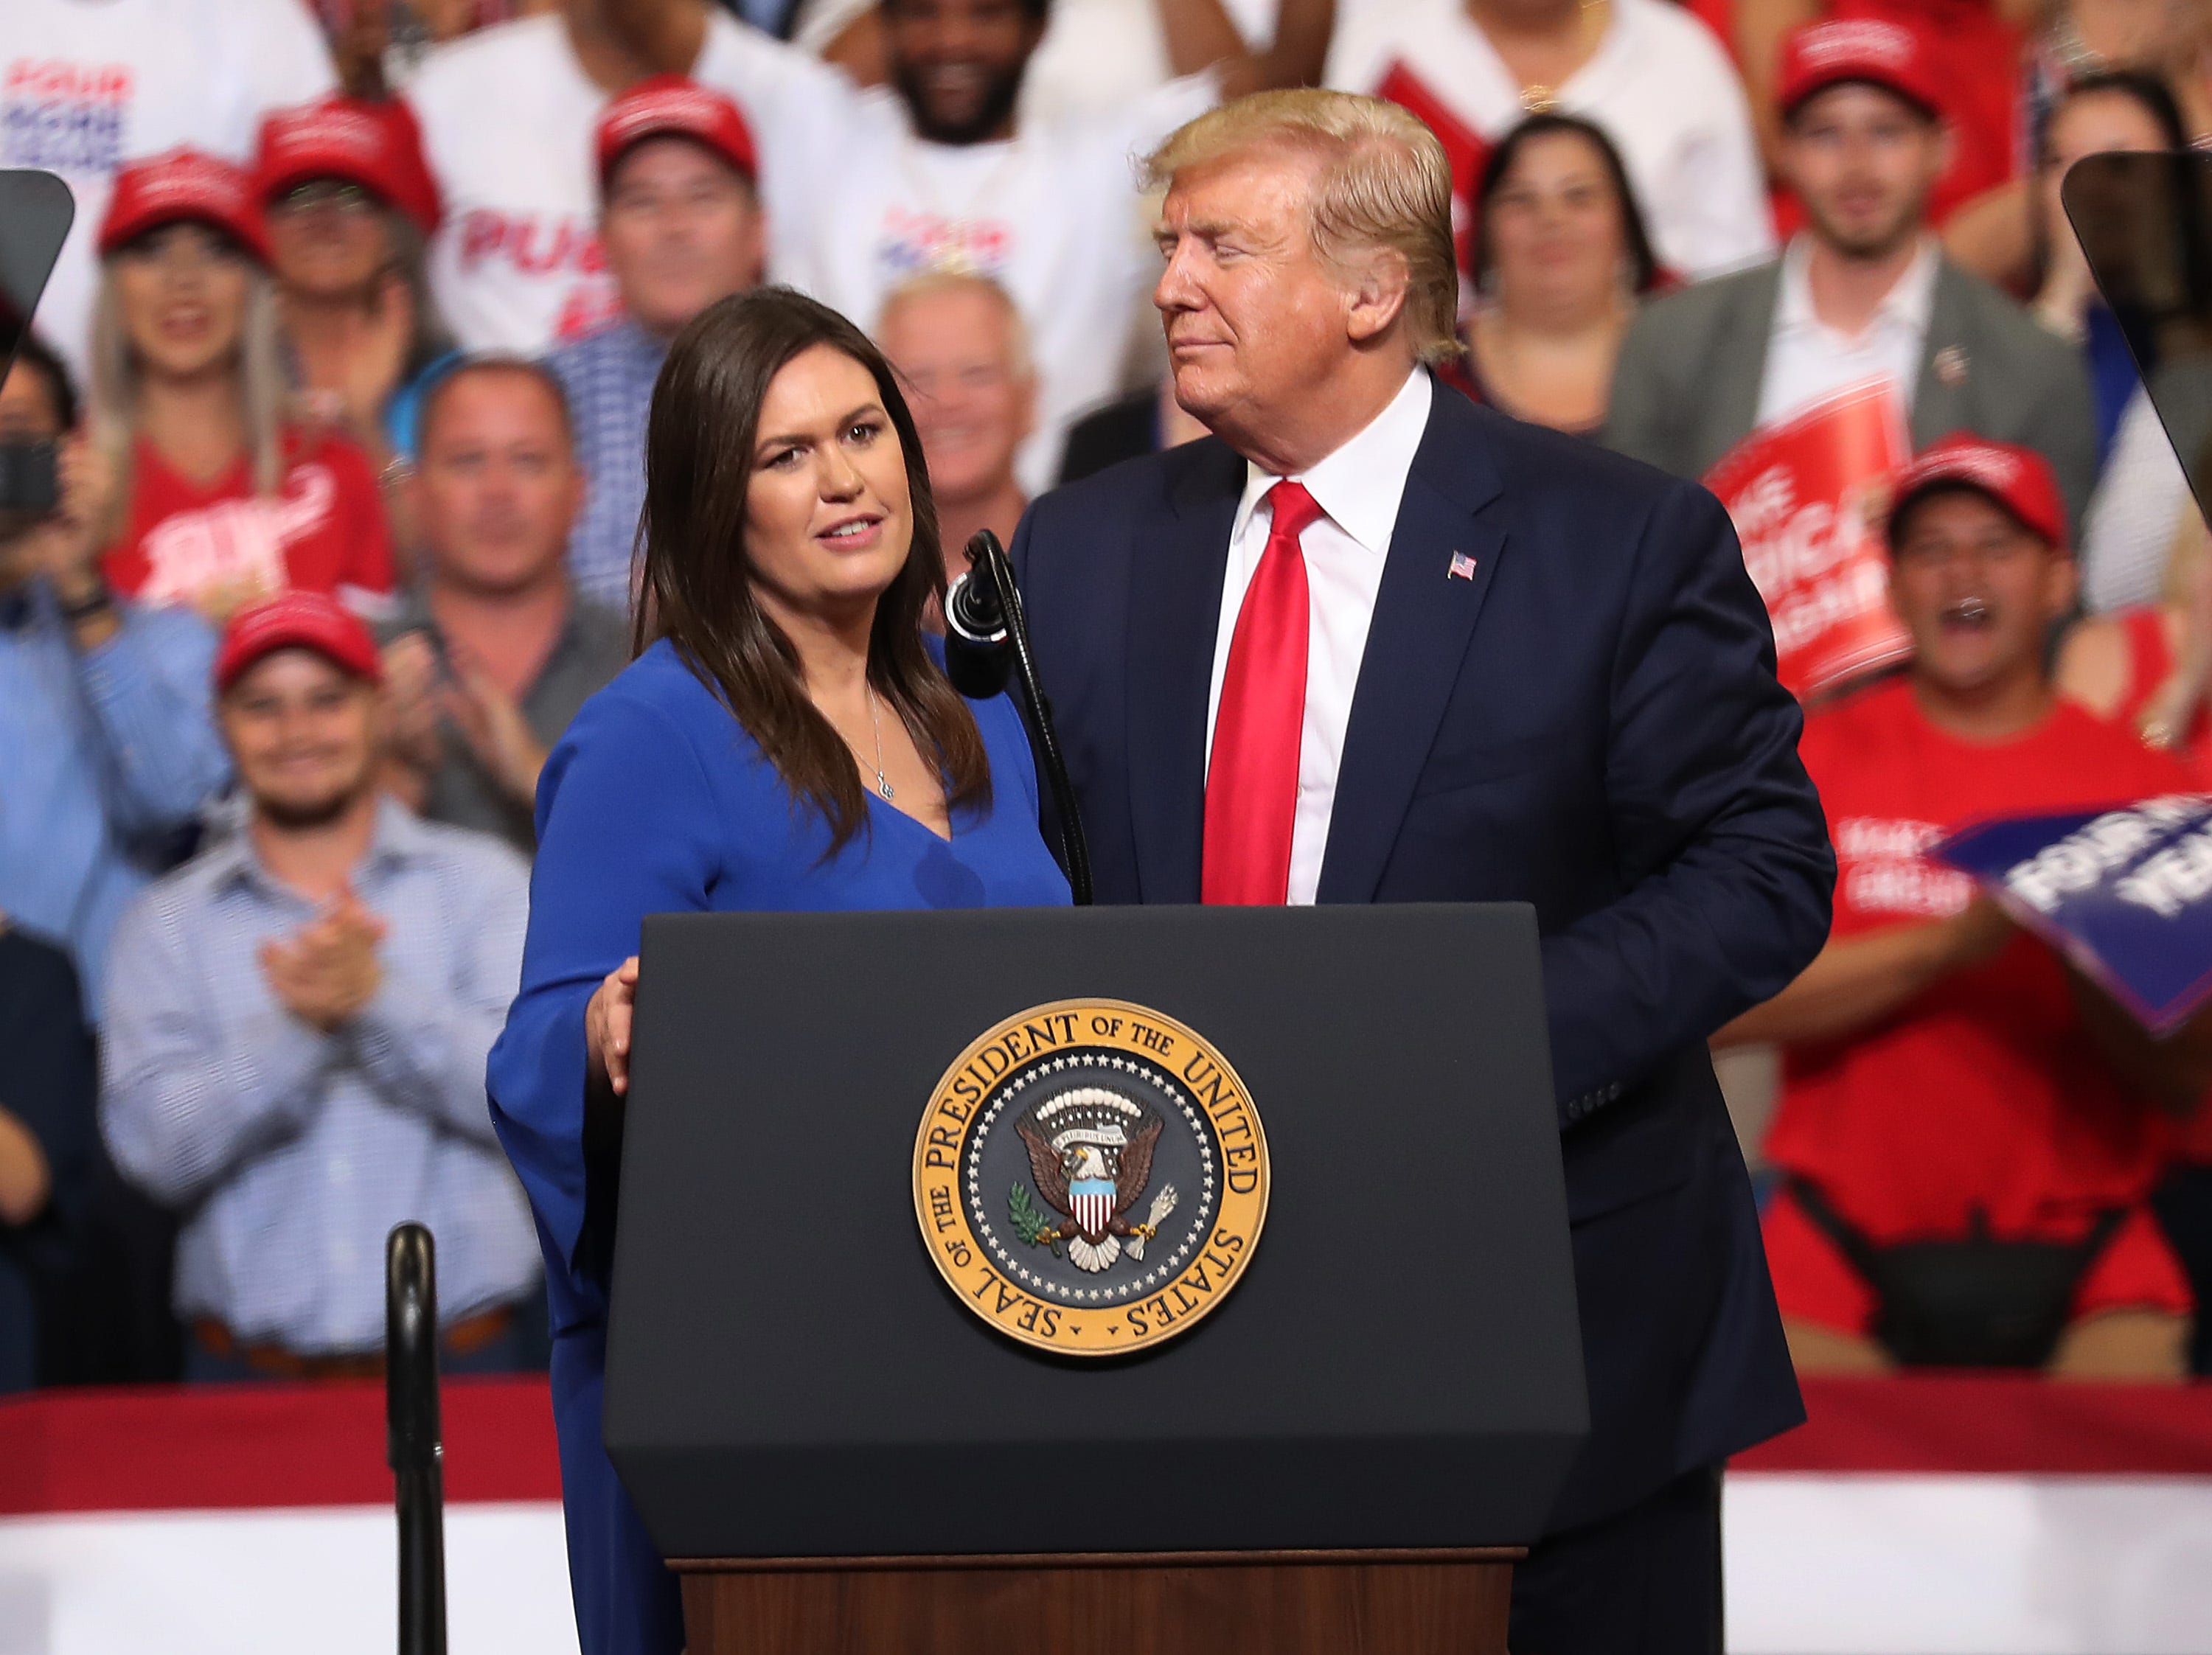 Sarah Sanders runs for governor of Arkansas in test of Trump brand